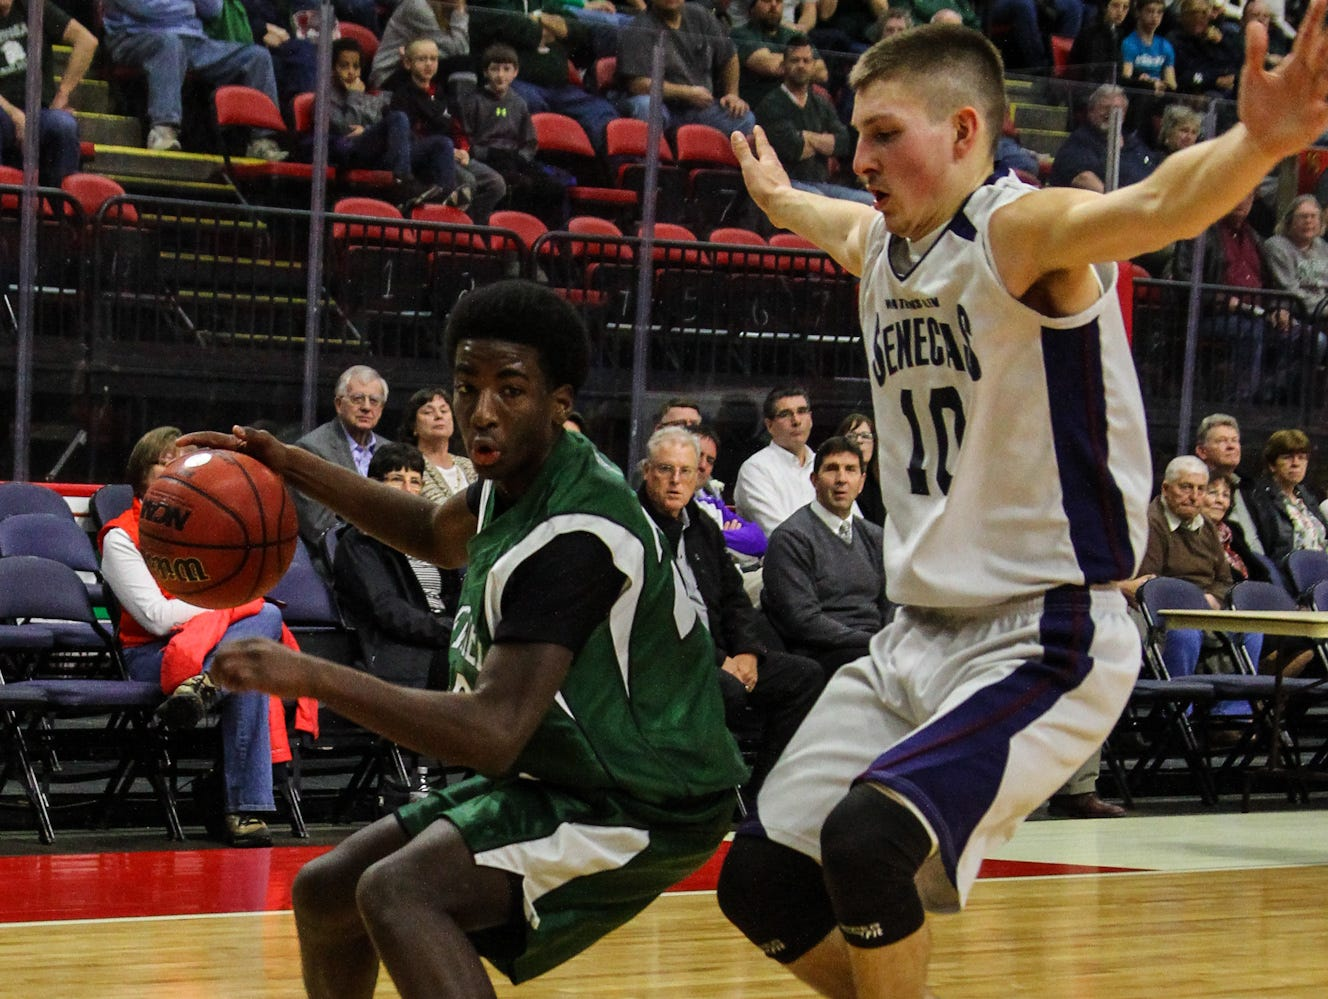 Newfield senior point guard Brian Barrett, shown in action last week against Watkins Glen at the Section 4 Class C title game in Binghamton, leads the Trojans in scoring at 15 points per game. Newfield meets top-ranked Waterville in the state Class C quarterfinals on Saturday in Oneonta.